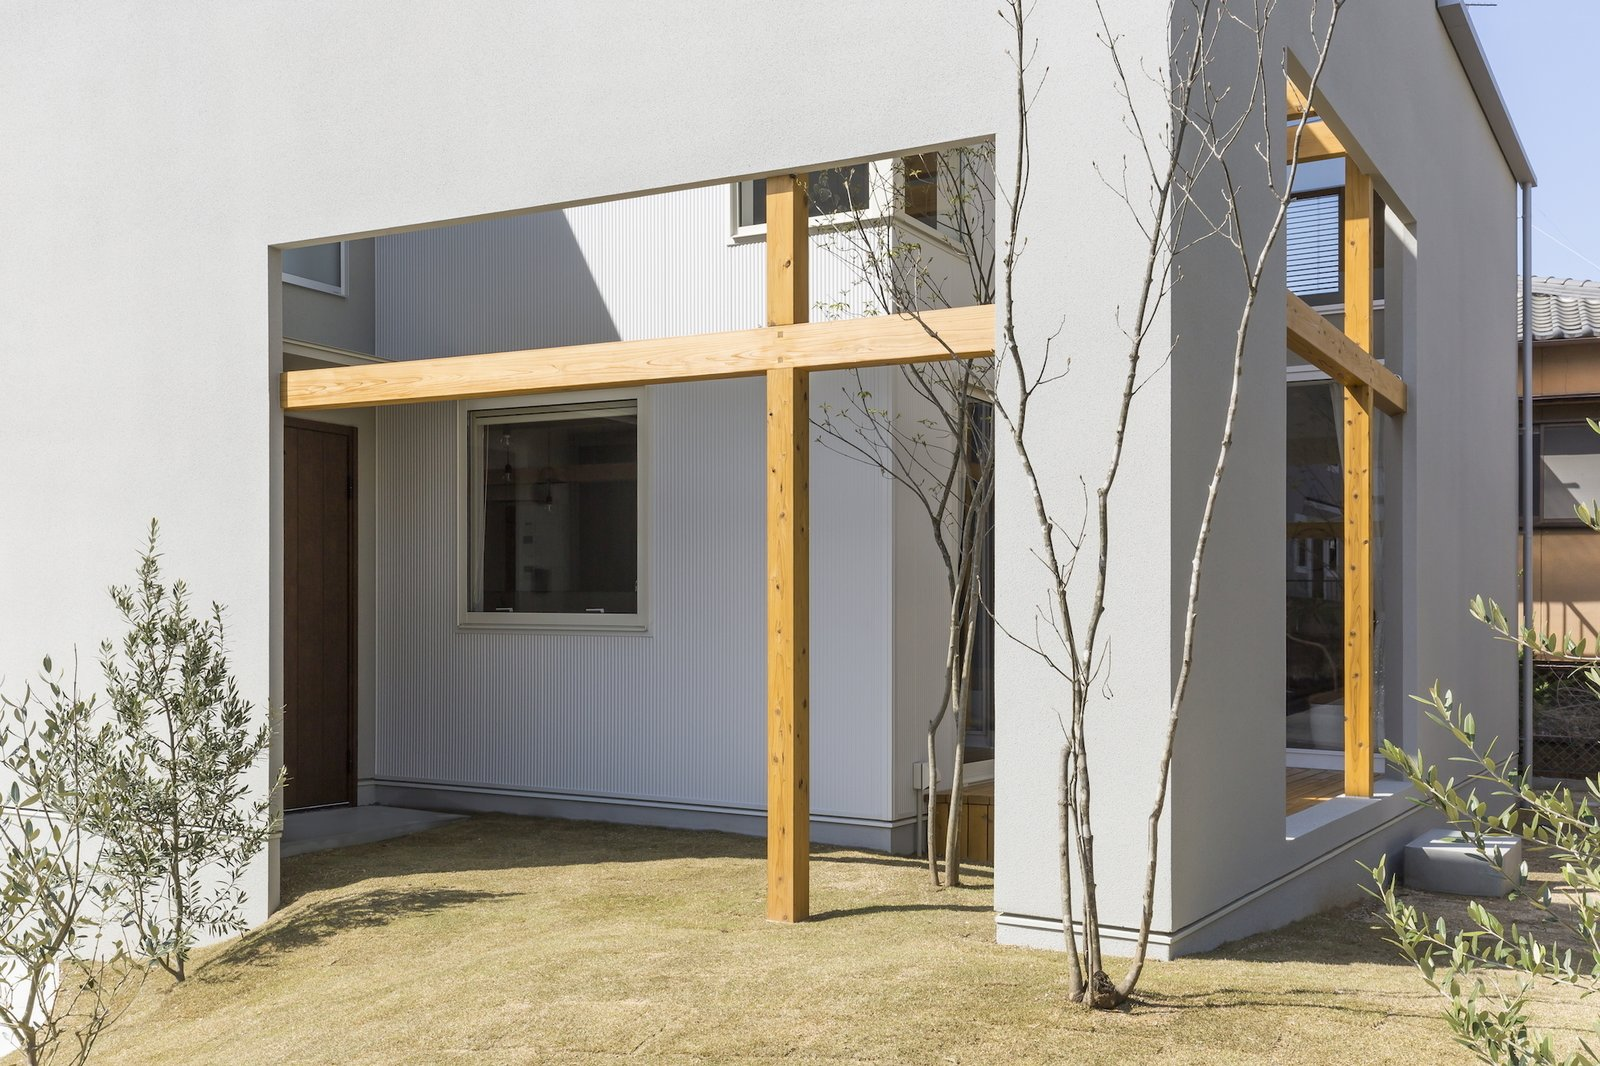 Photo 4 of 4 in Uji House by ALTS Design Office